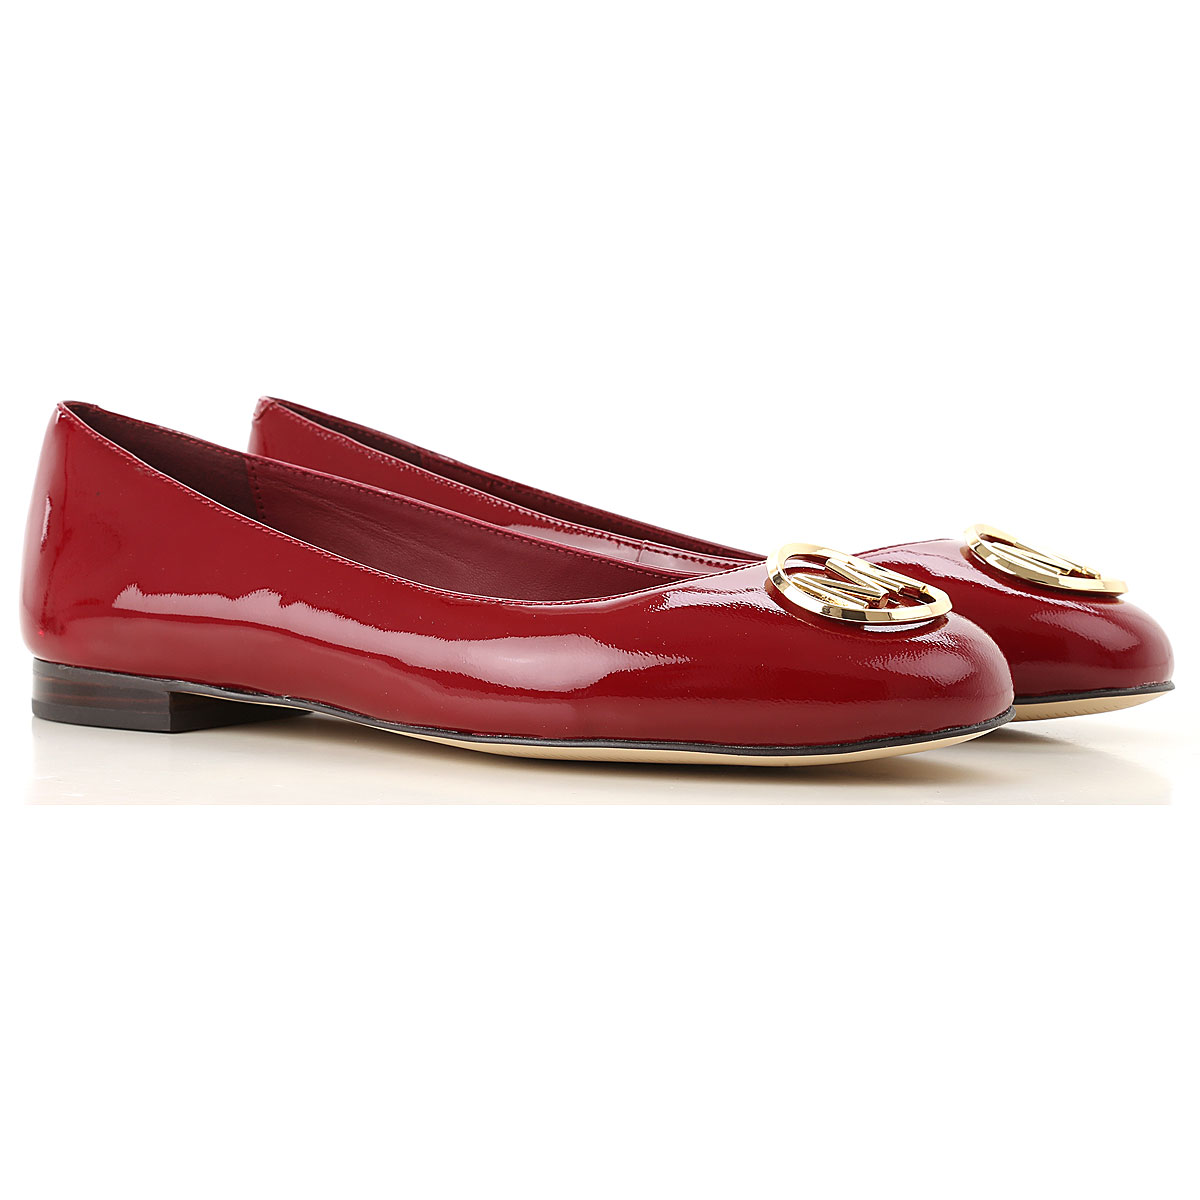 Image of Michael Kors Ballet Flats Ballerina Shoes for Women, Maroon, Patent Leather, 2017, 5.5 6 6.5 7